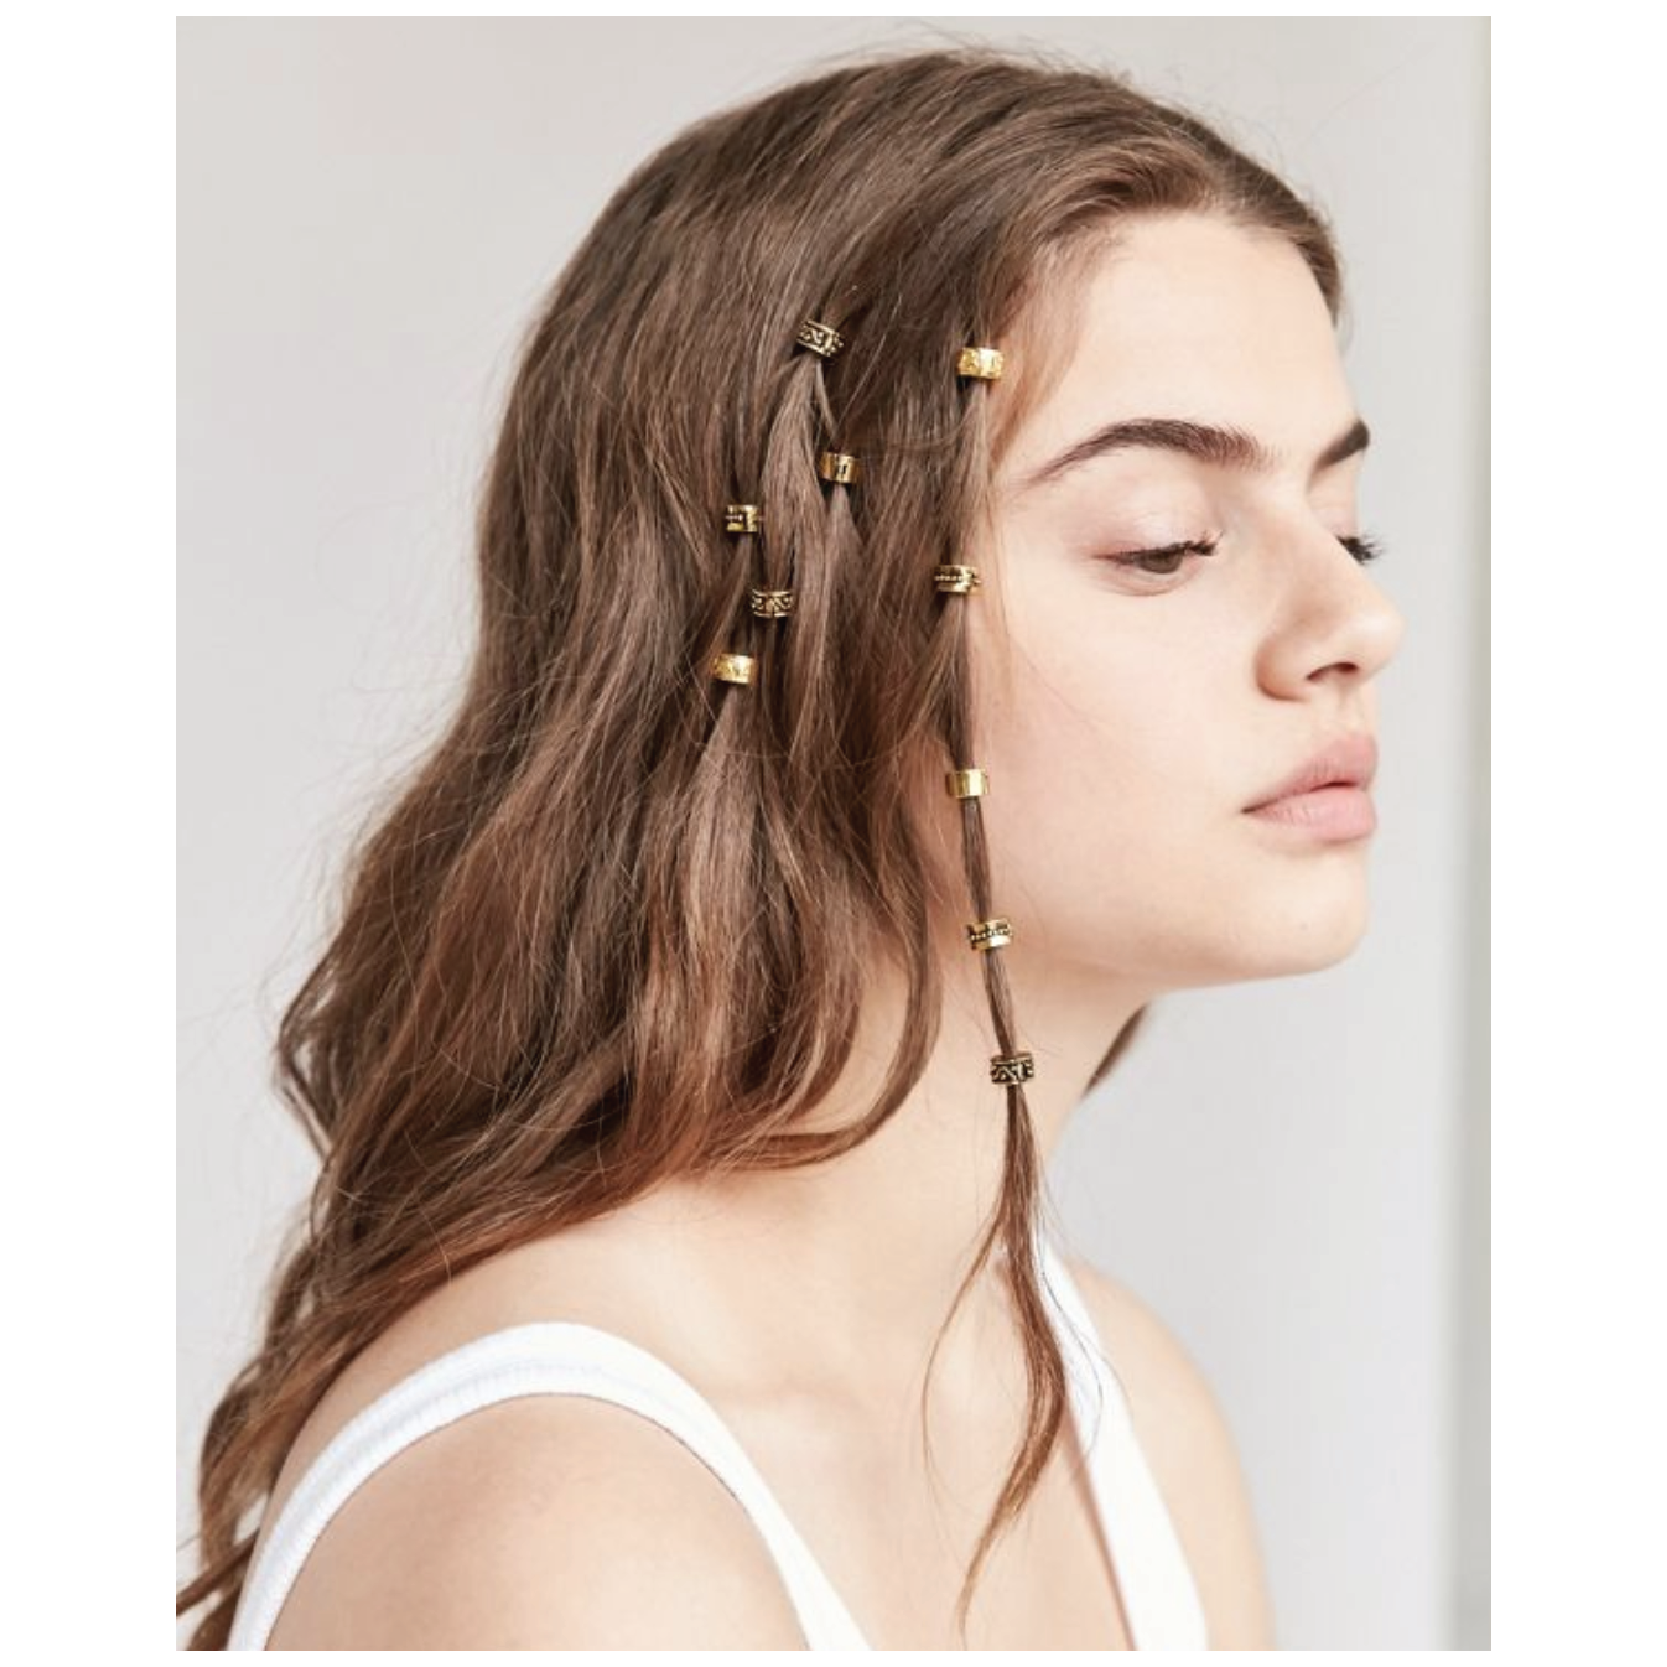 Regal Rose Engraved Hair Charm Set - $20 at Urban OutfittersThese charms look beautiful in any type of hair, and are the perfect unique accessory to spice up a look.